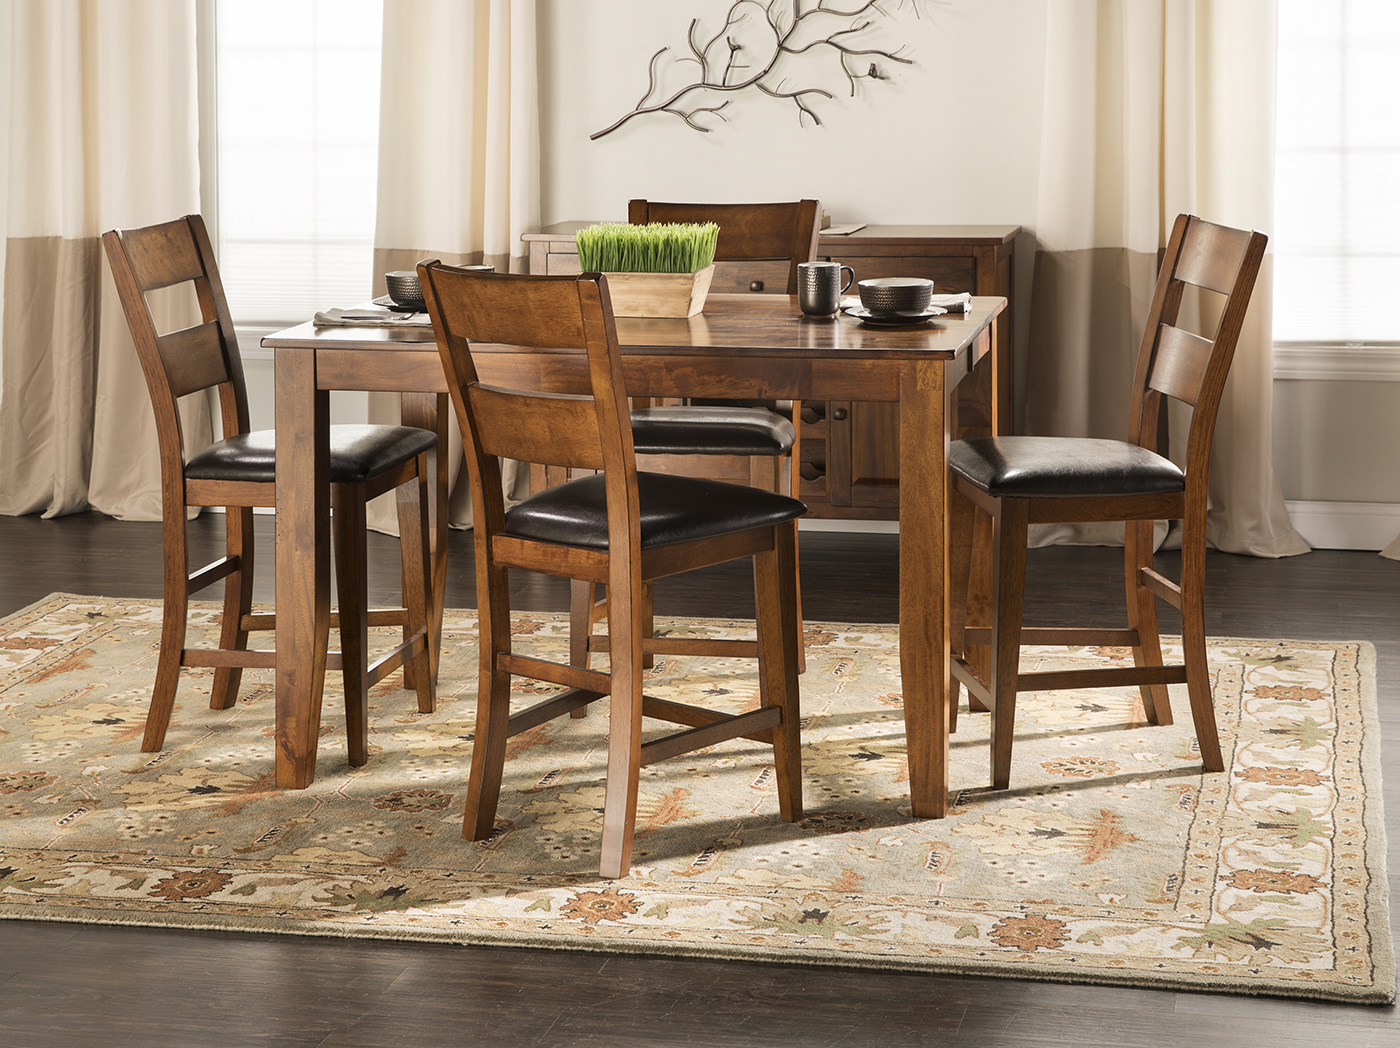 Counter-Height Dining Set & Dining - Dining Sets | Steinhafels